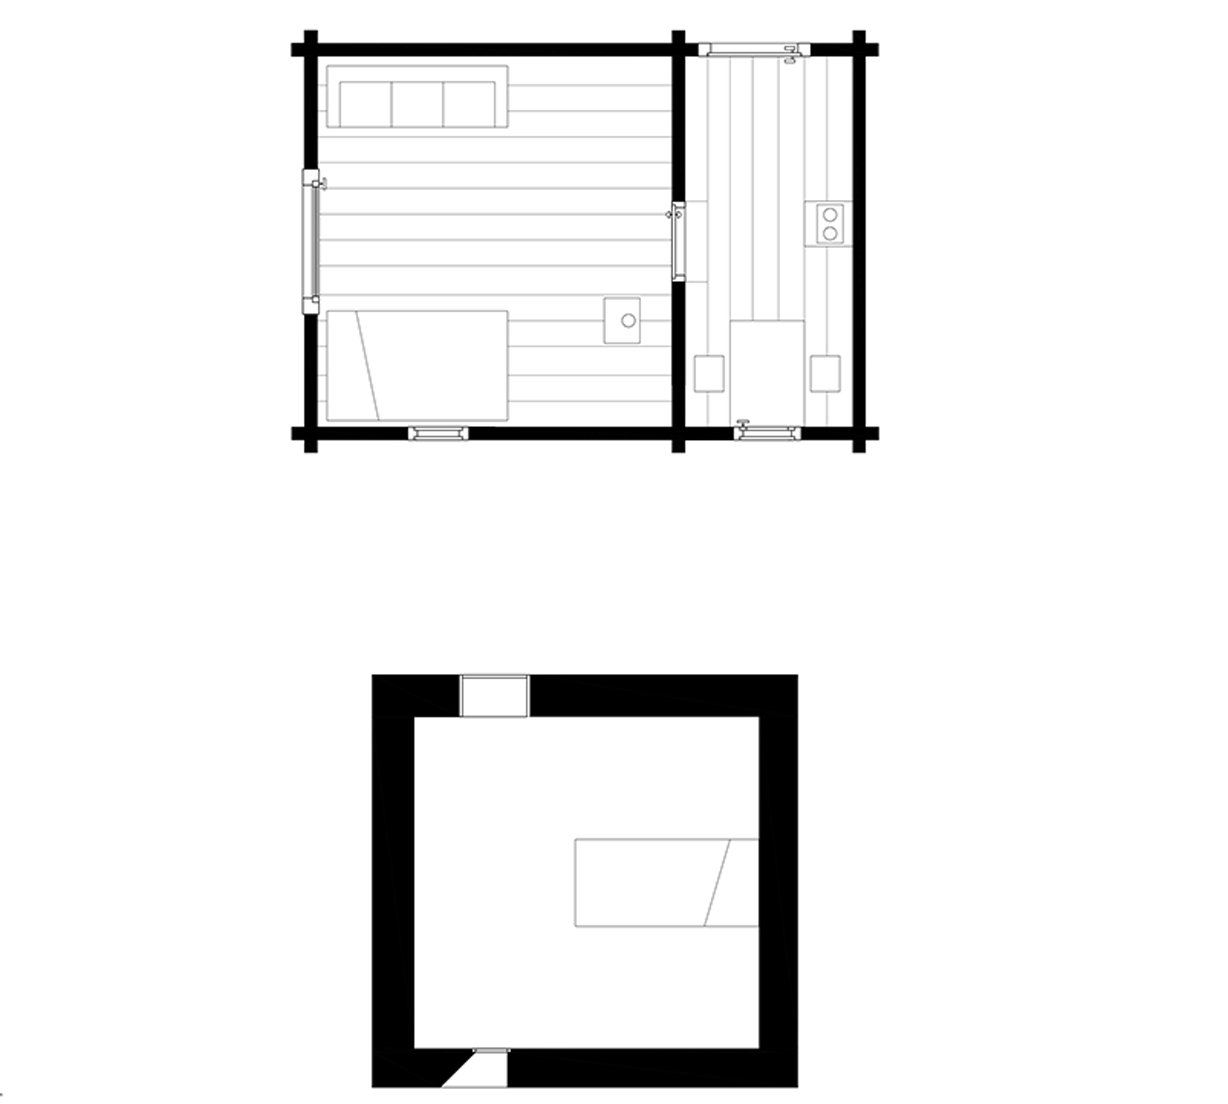 Mountain cabin arcdog for Mountain cabin floor plans